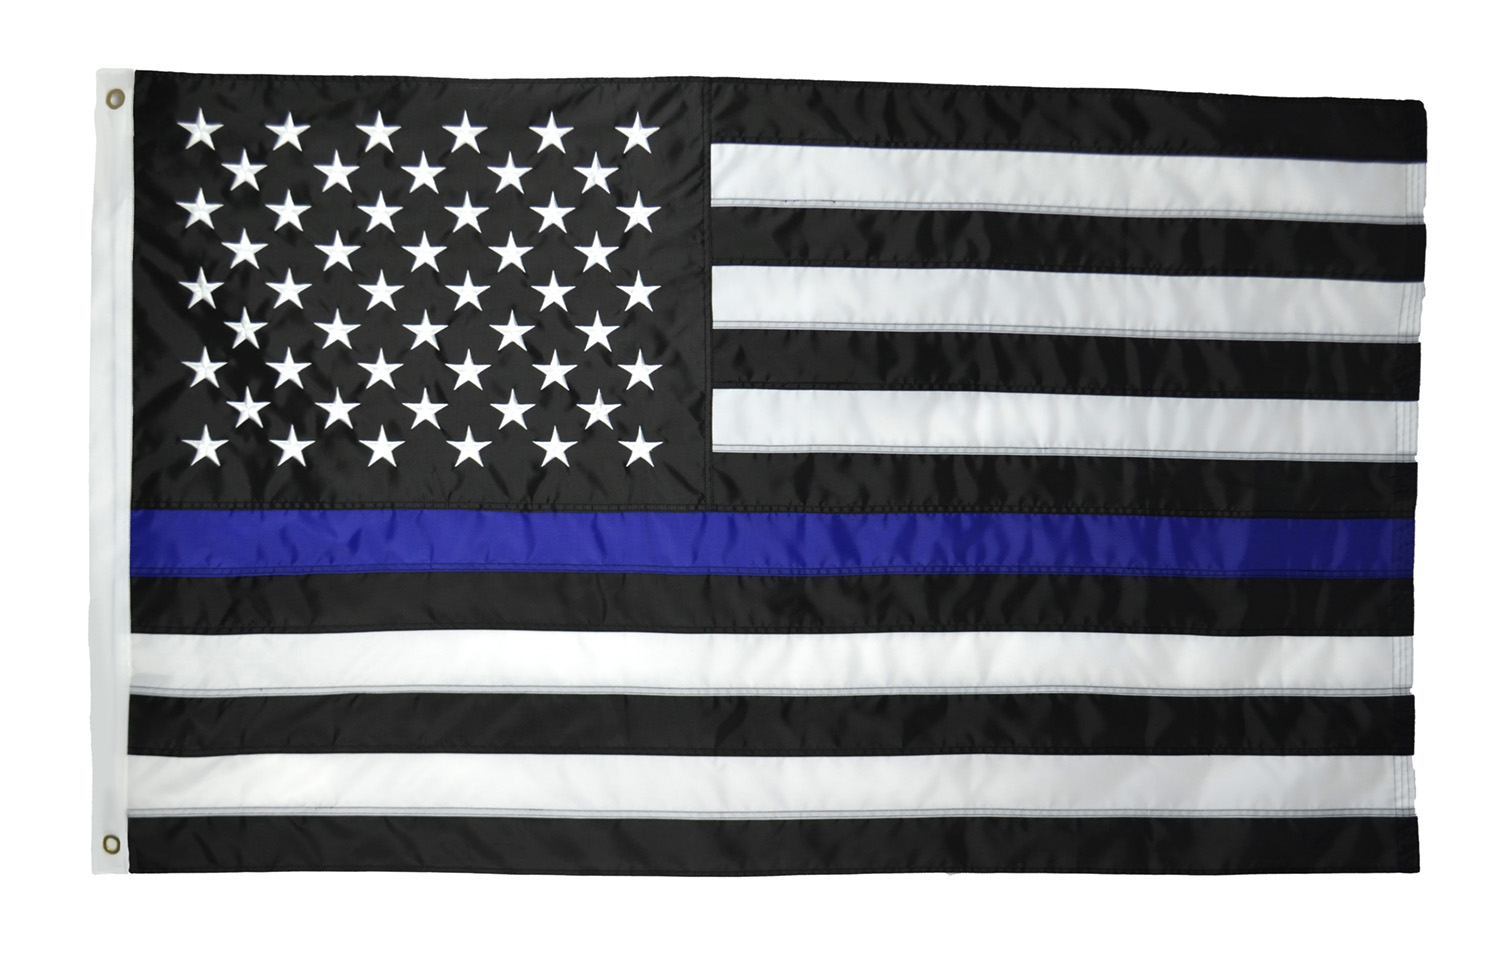 Thin Blue Line Flag - 4X6 Foot - Embroidered Stars - Sewn Stripes - Black White and Blue American Police Flag Honoring Law Enforcement Officers